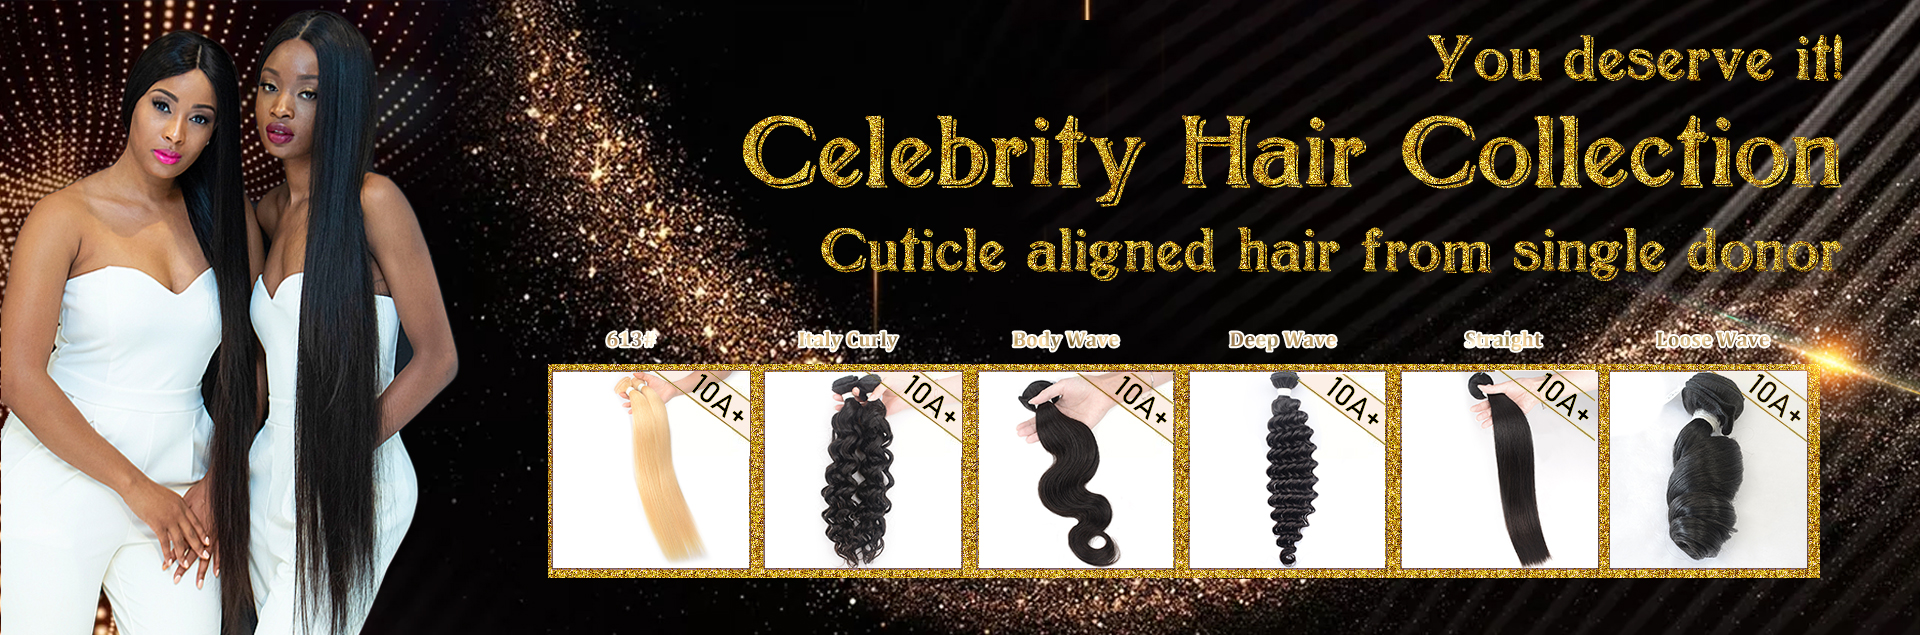 10A+ Celebrity Hair Collection